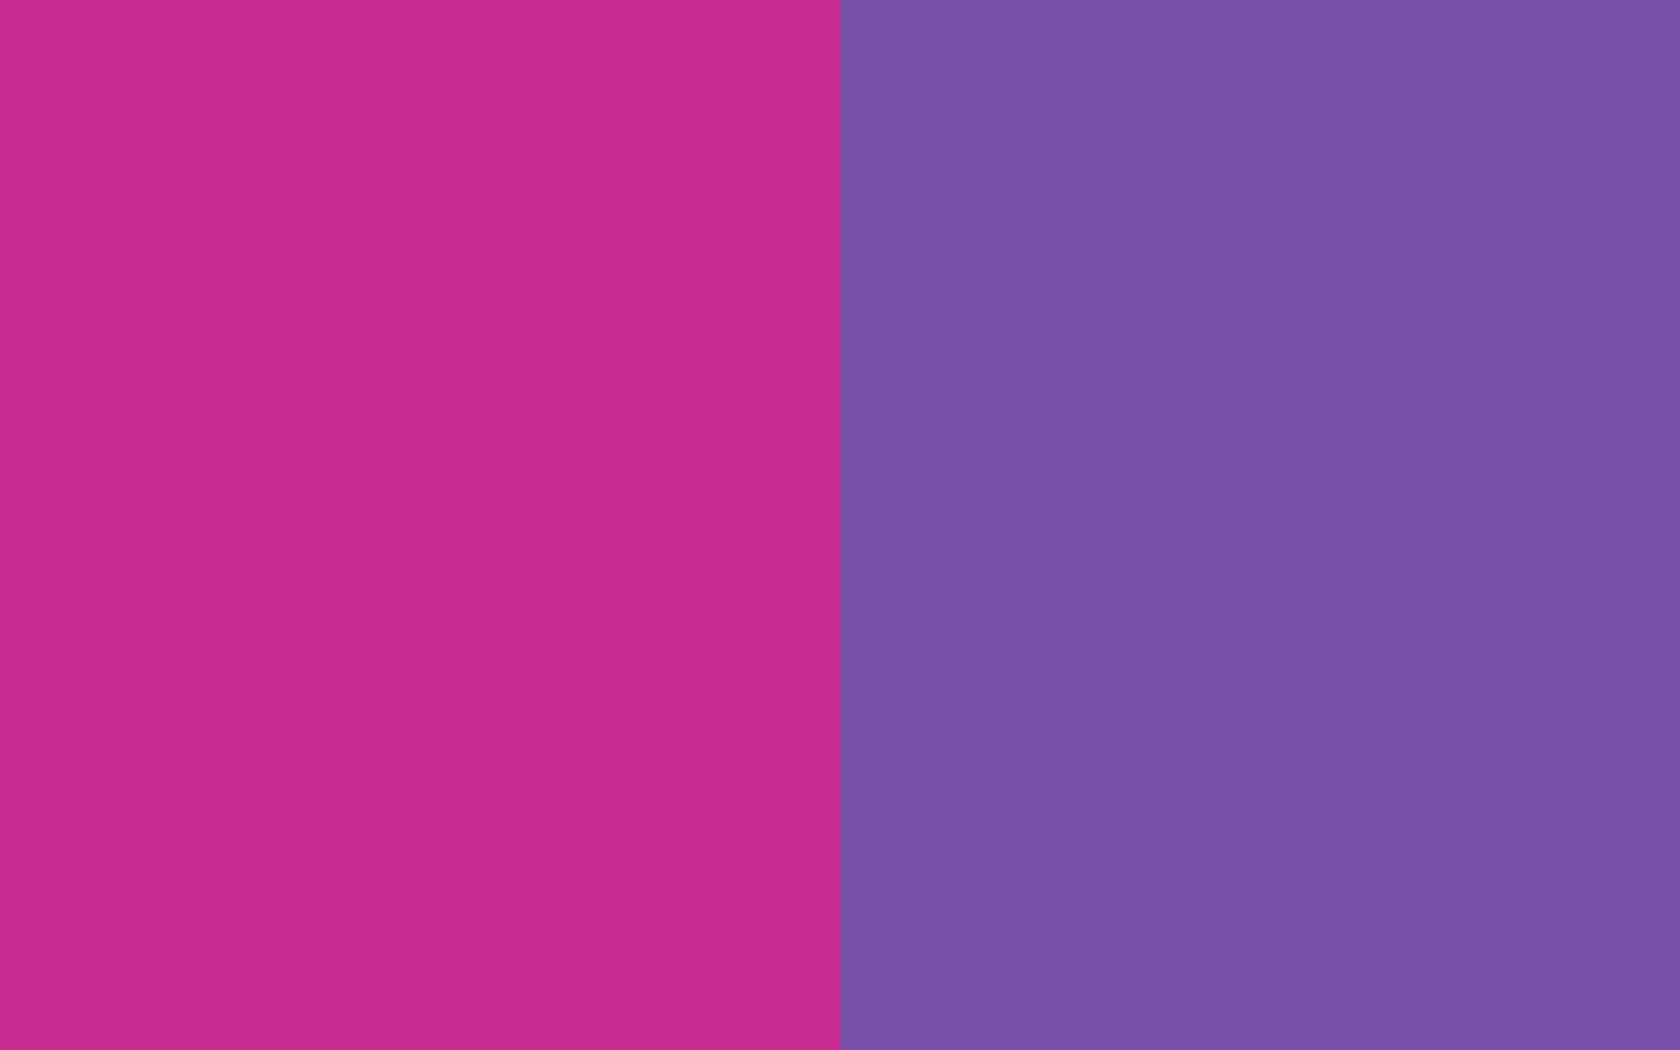 resolution Royal Fuchsia and Royal Purple solid two color background 1680x1050